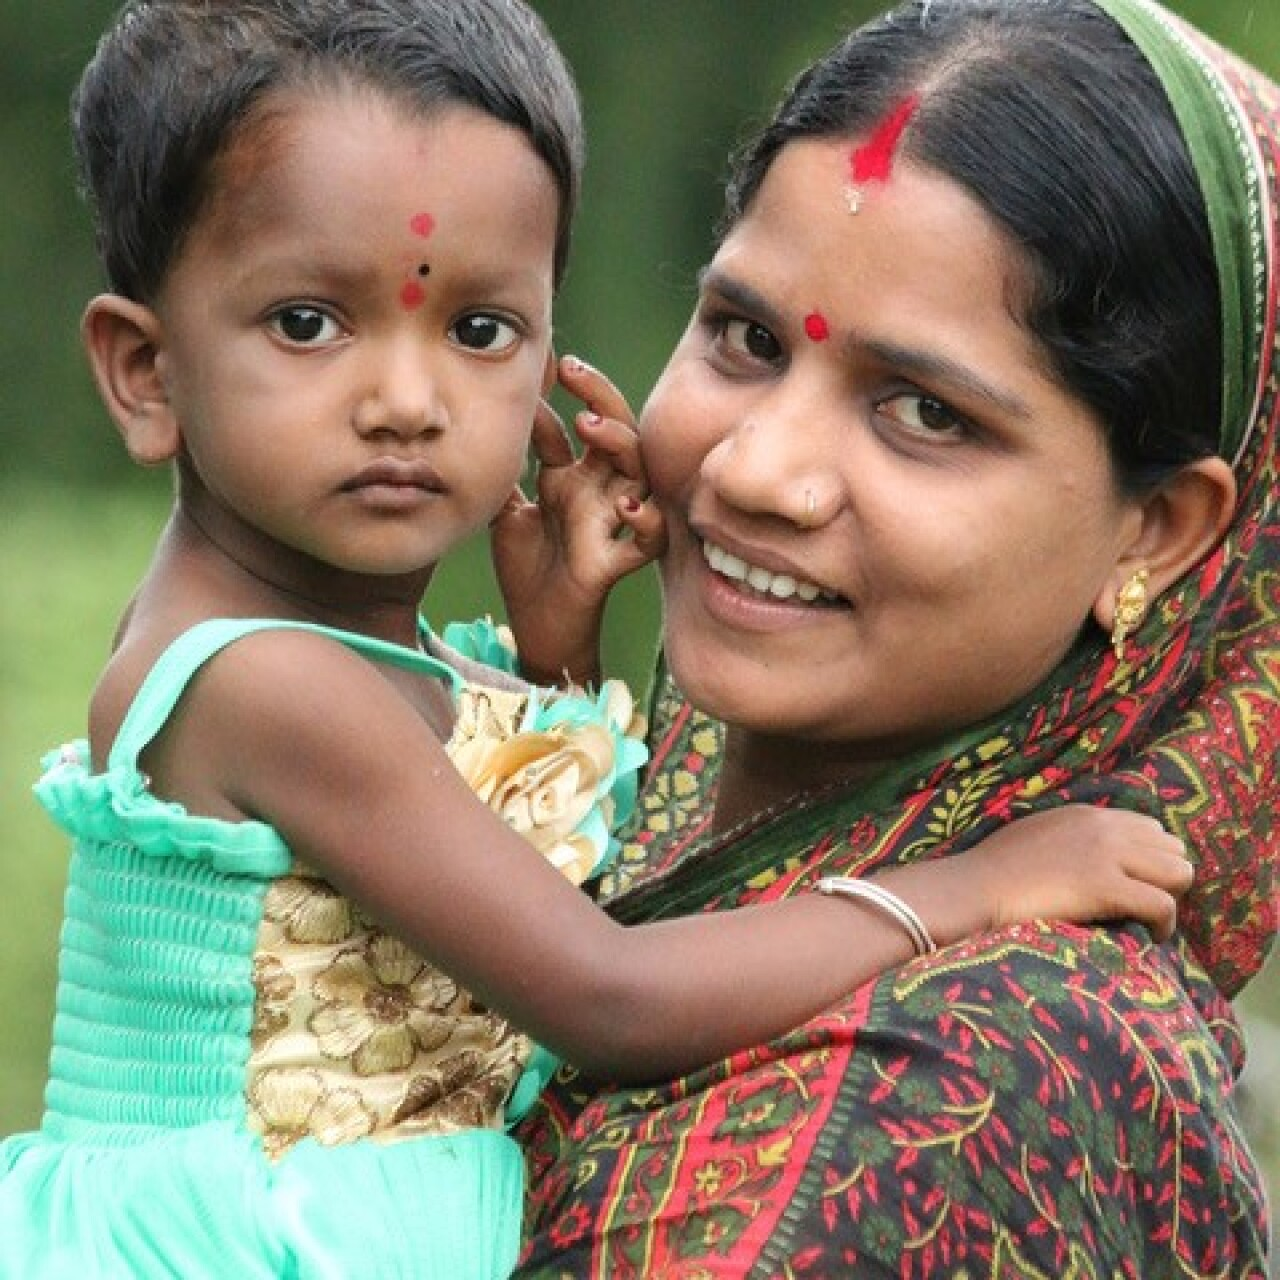 A young woman smiling and looking at the camera; she is wearing a green, black, yellow, and green sari; she is holding a young girl that is wearing a light blue and gold floral dress.